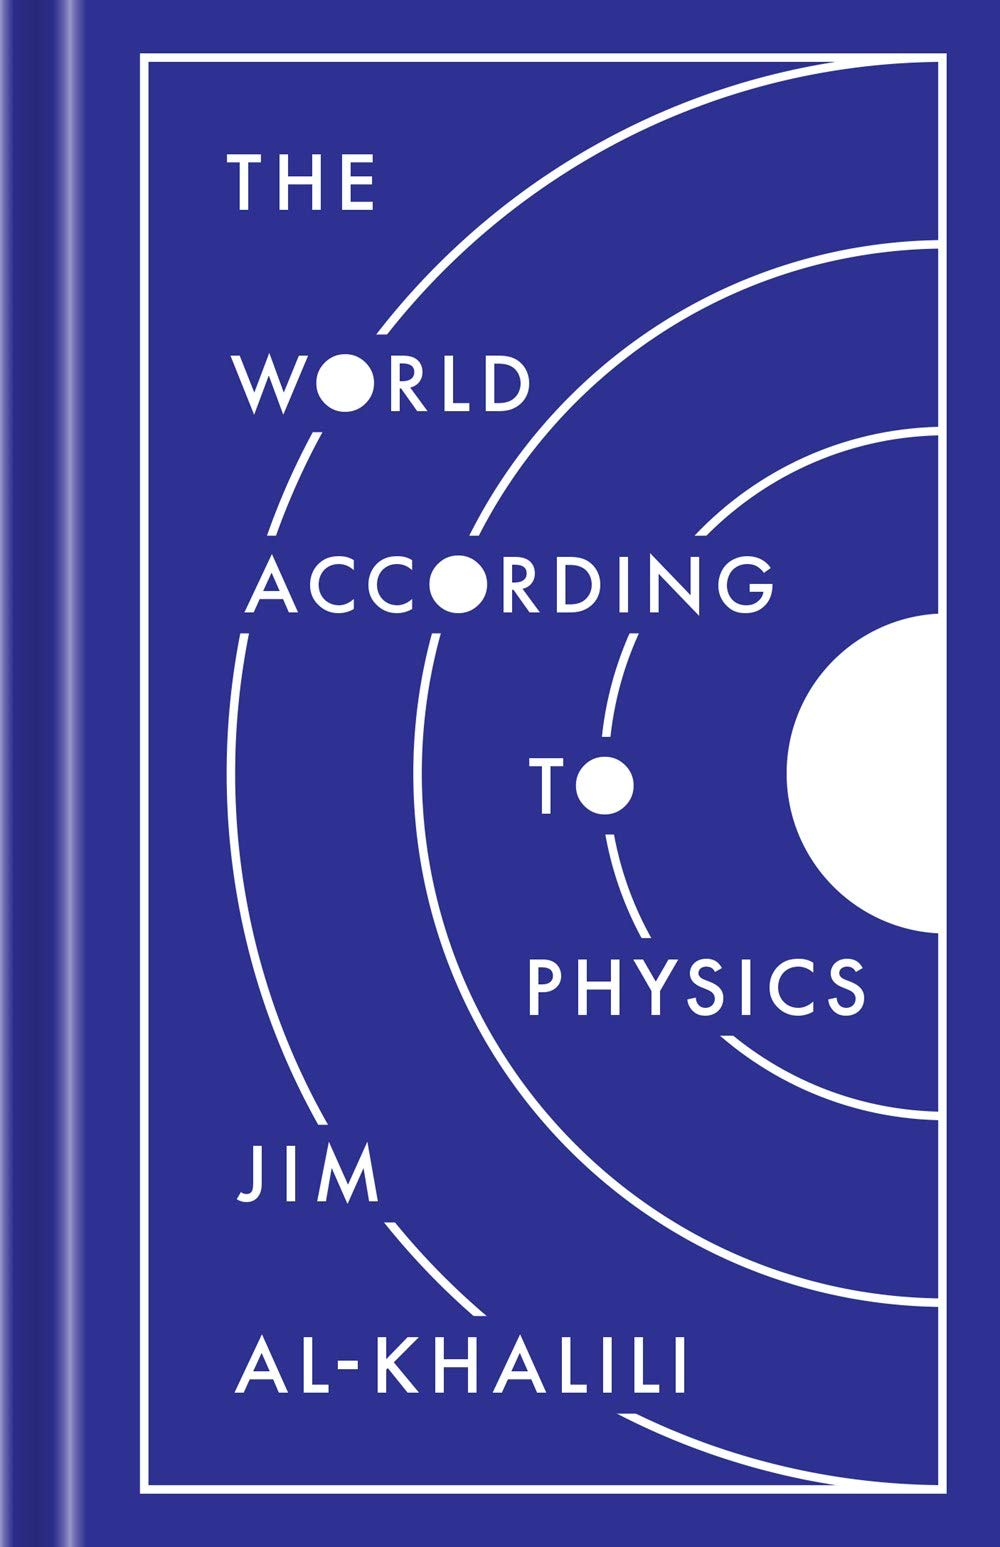 world according to physics by al-khalili cover art